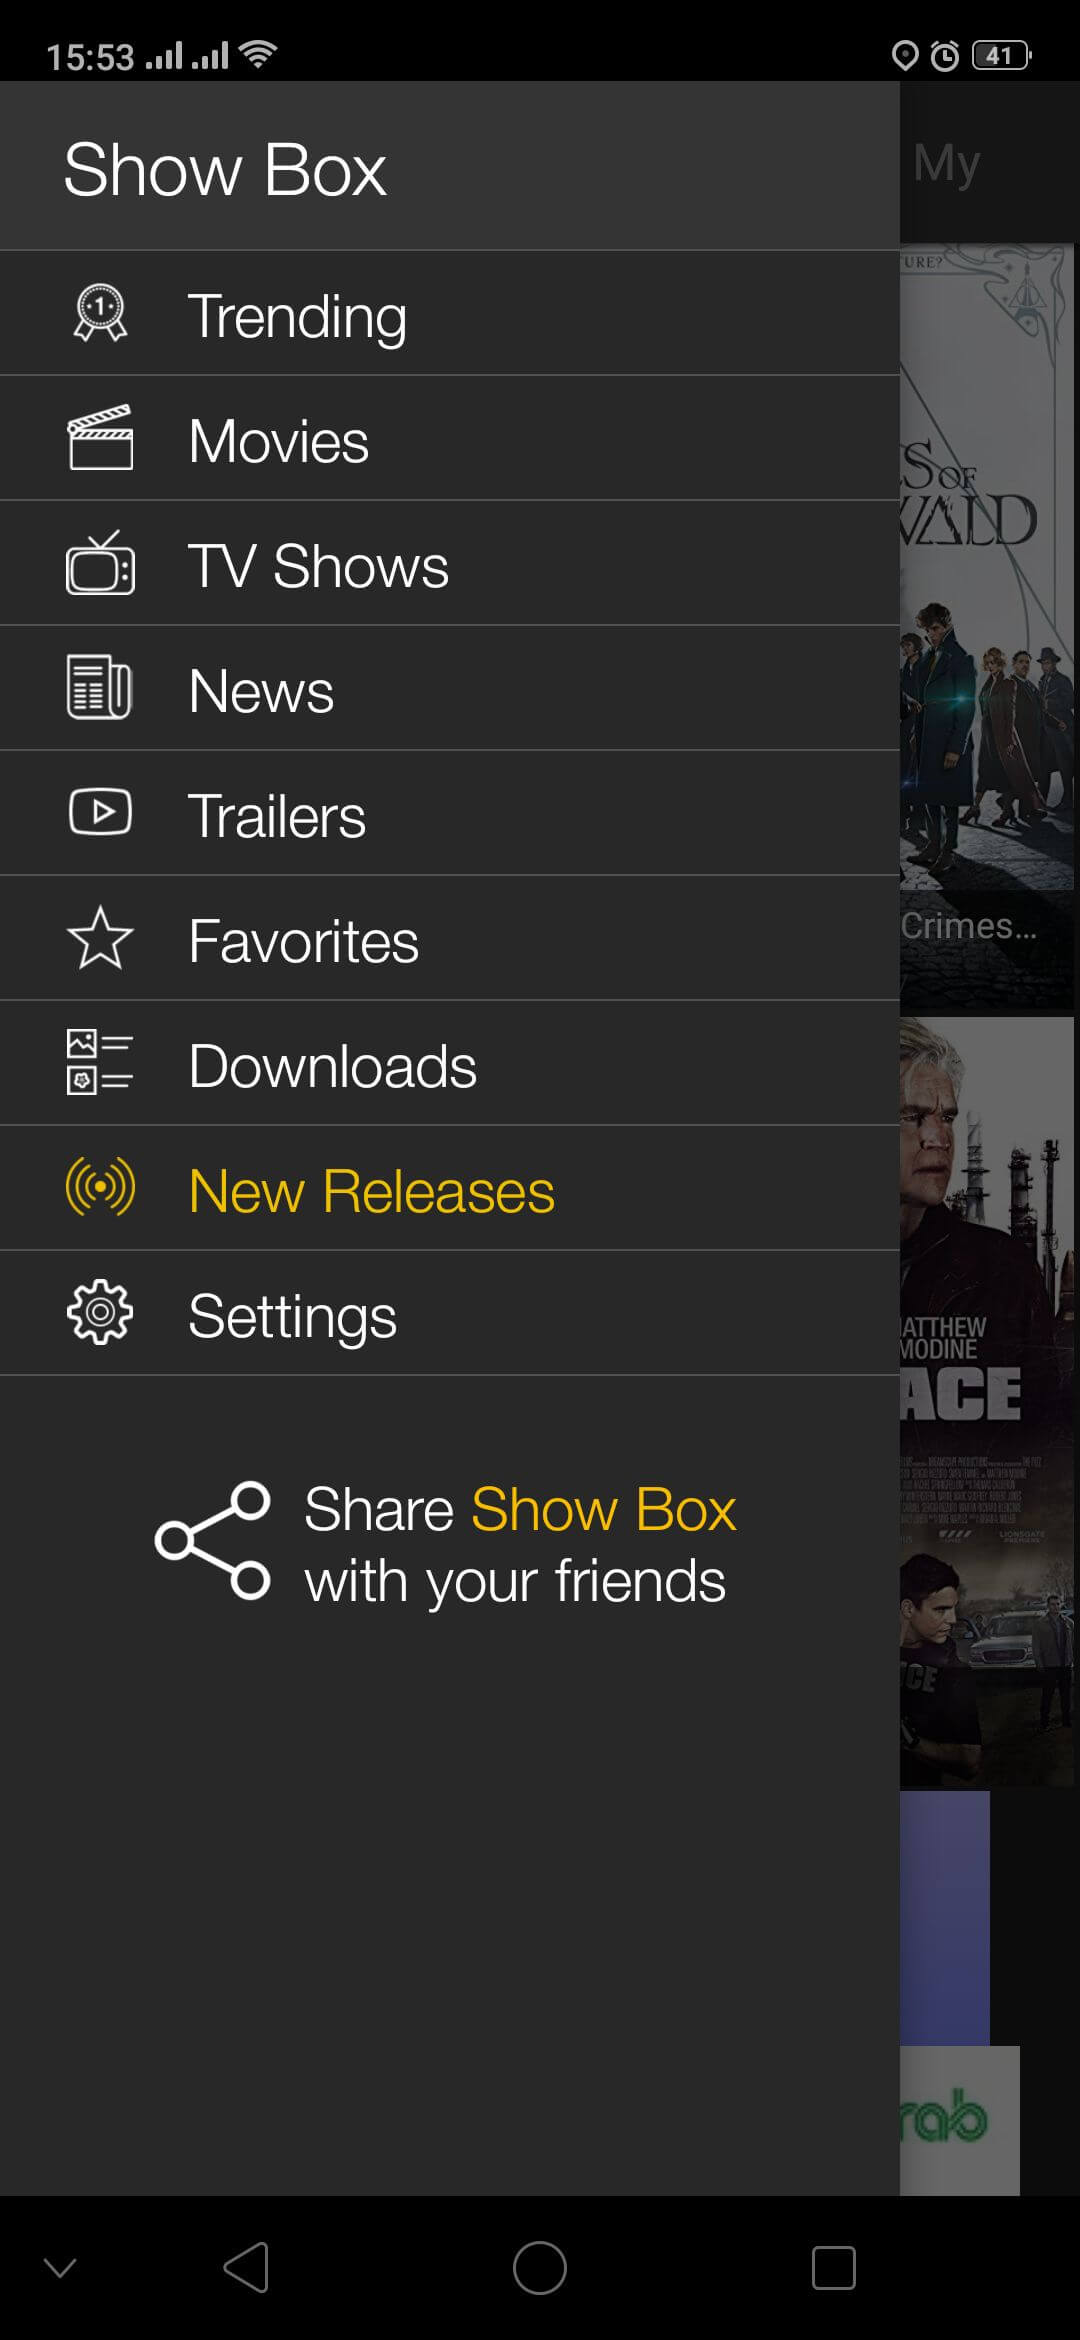 showbox watch now option not working